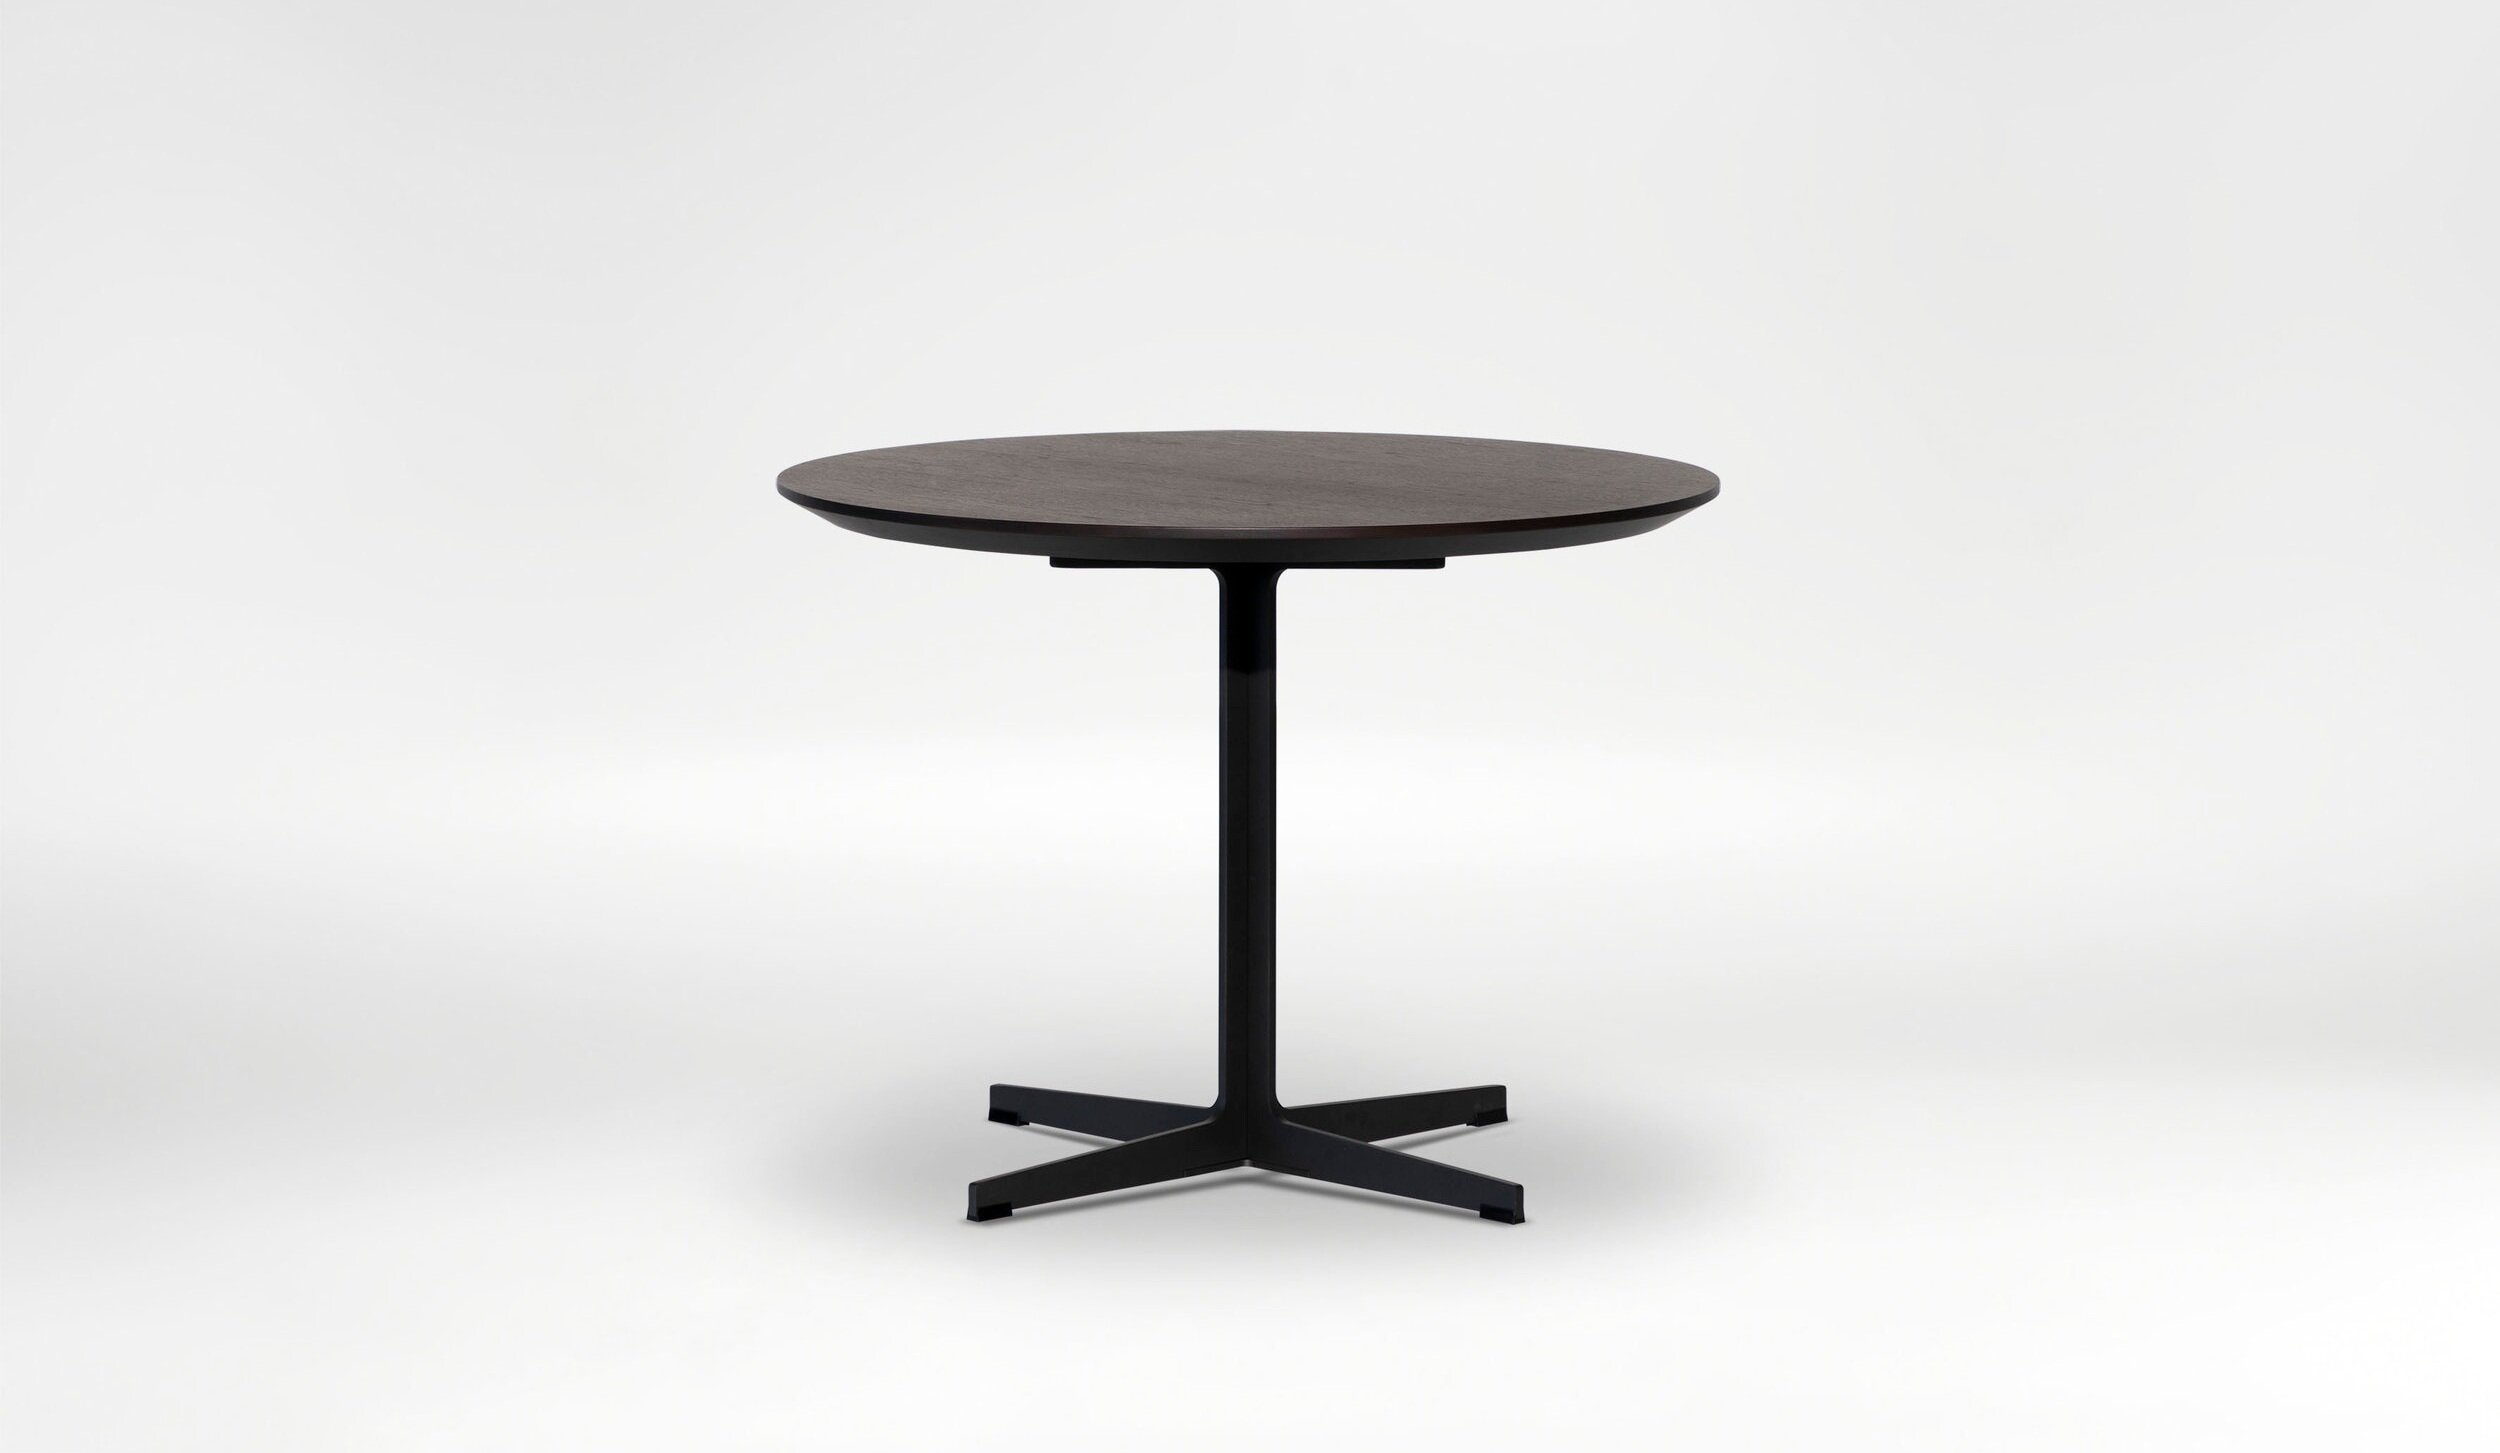 vary dining table - Vary table combines clean lines with a striking cross base stance.